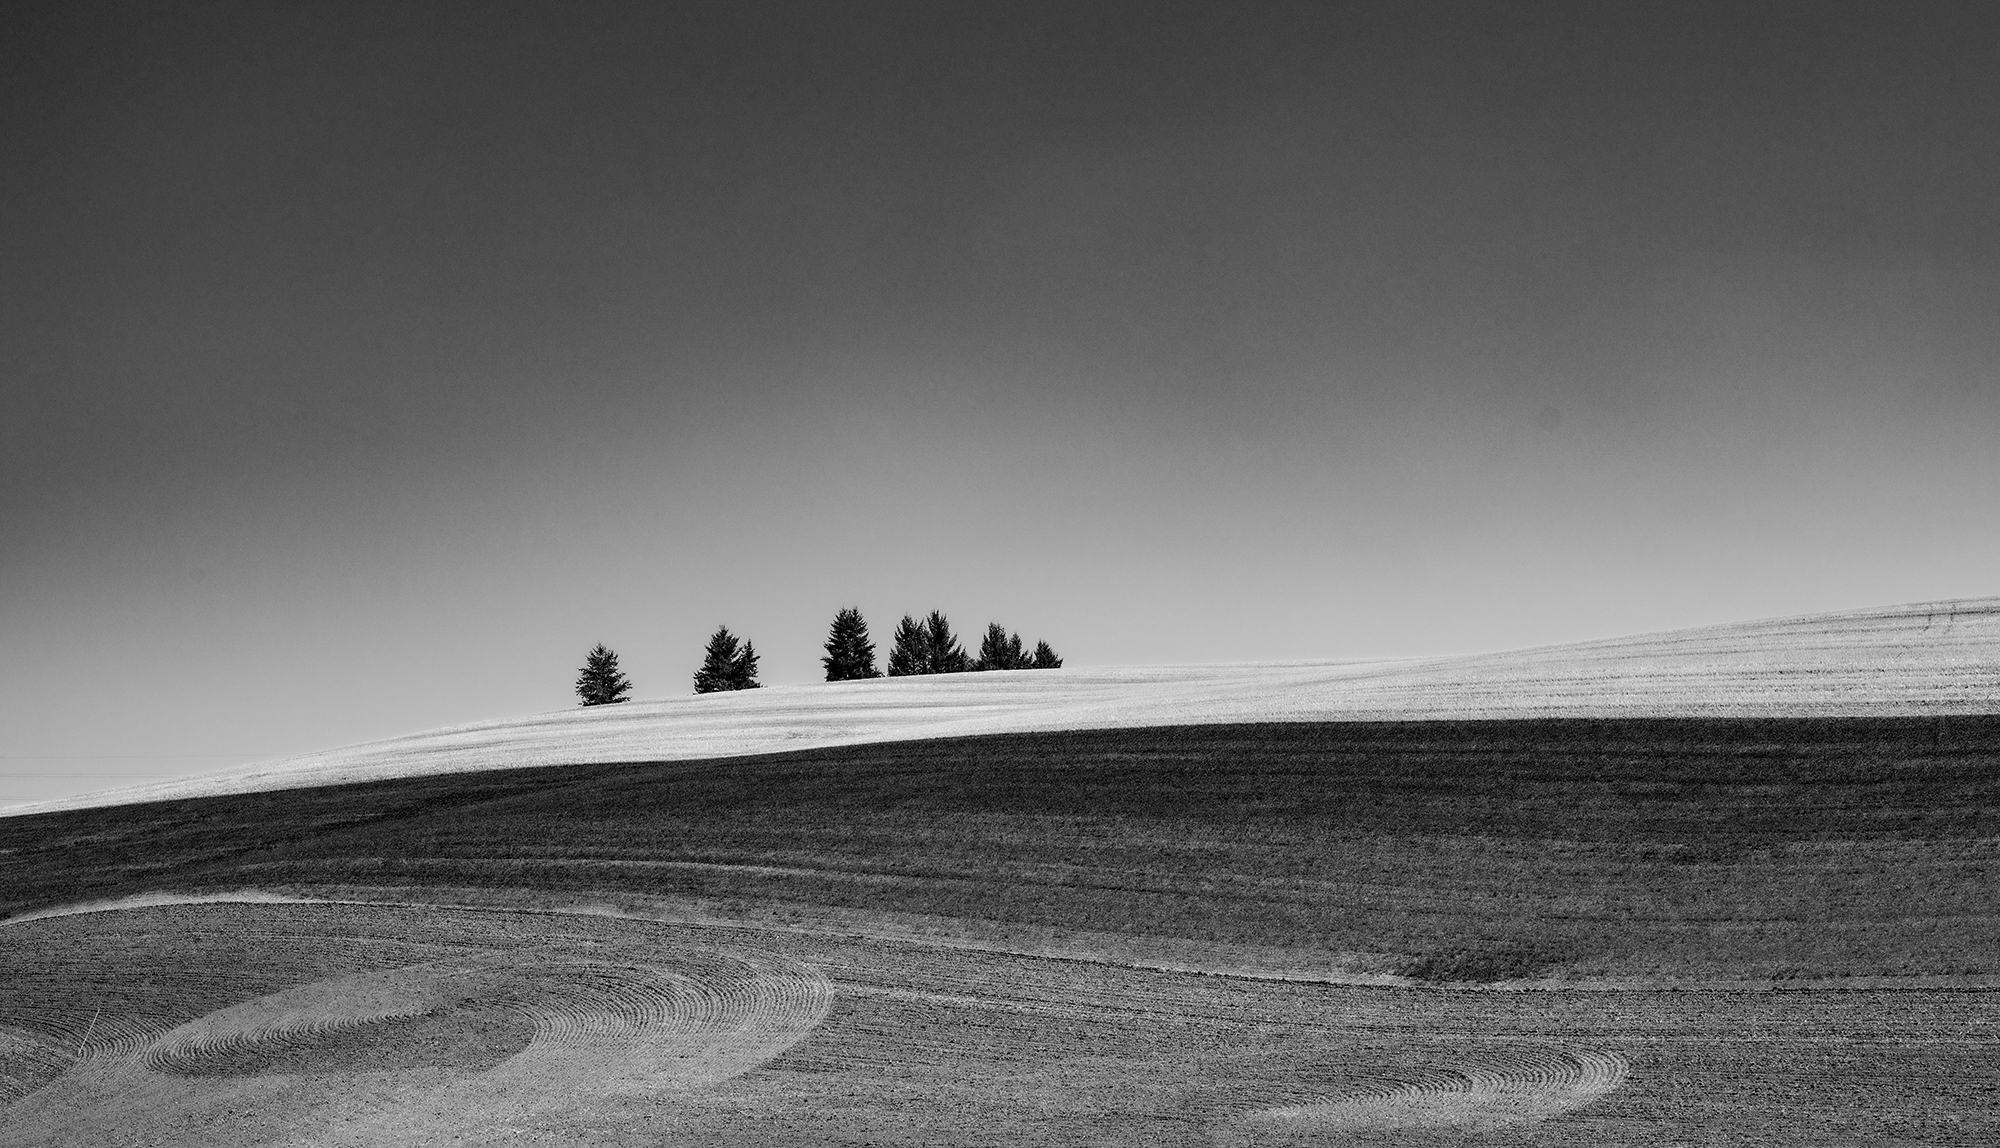 Monochrome focuses the viewer's attention on the flow of the landscape and the artistic patterns created by the farming of the soil.